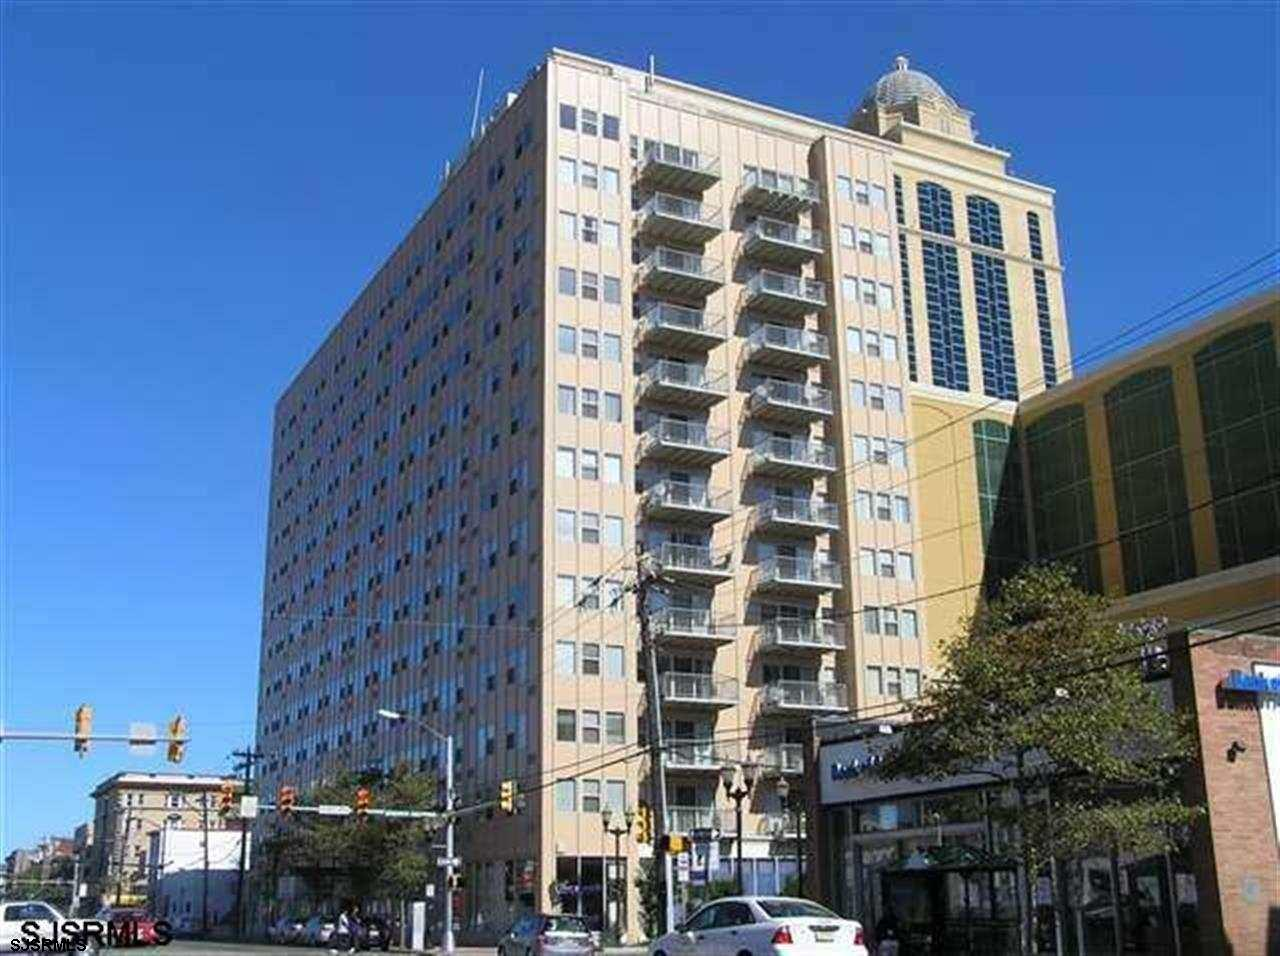 Investors special! Bay view and toward Borgata from this 1 bedroom unit on 4th floor. Tenant occupie